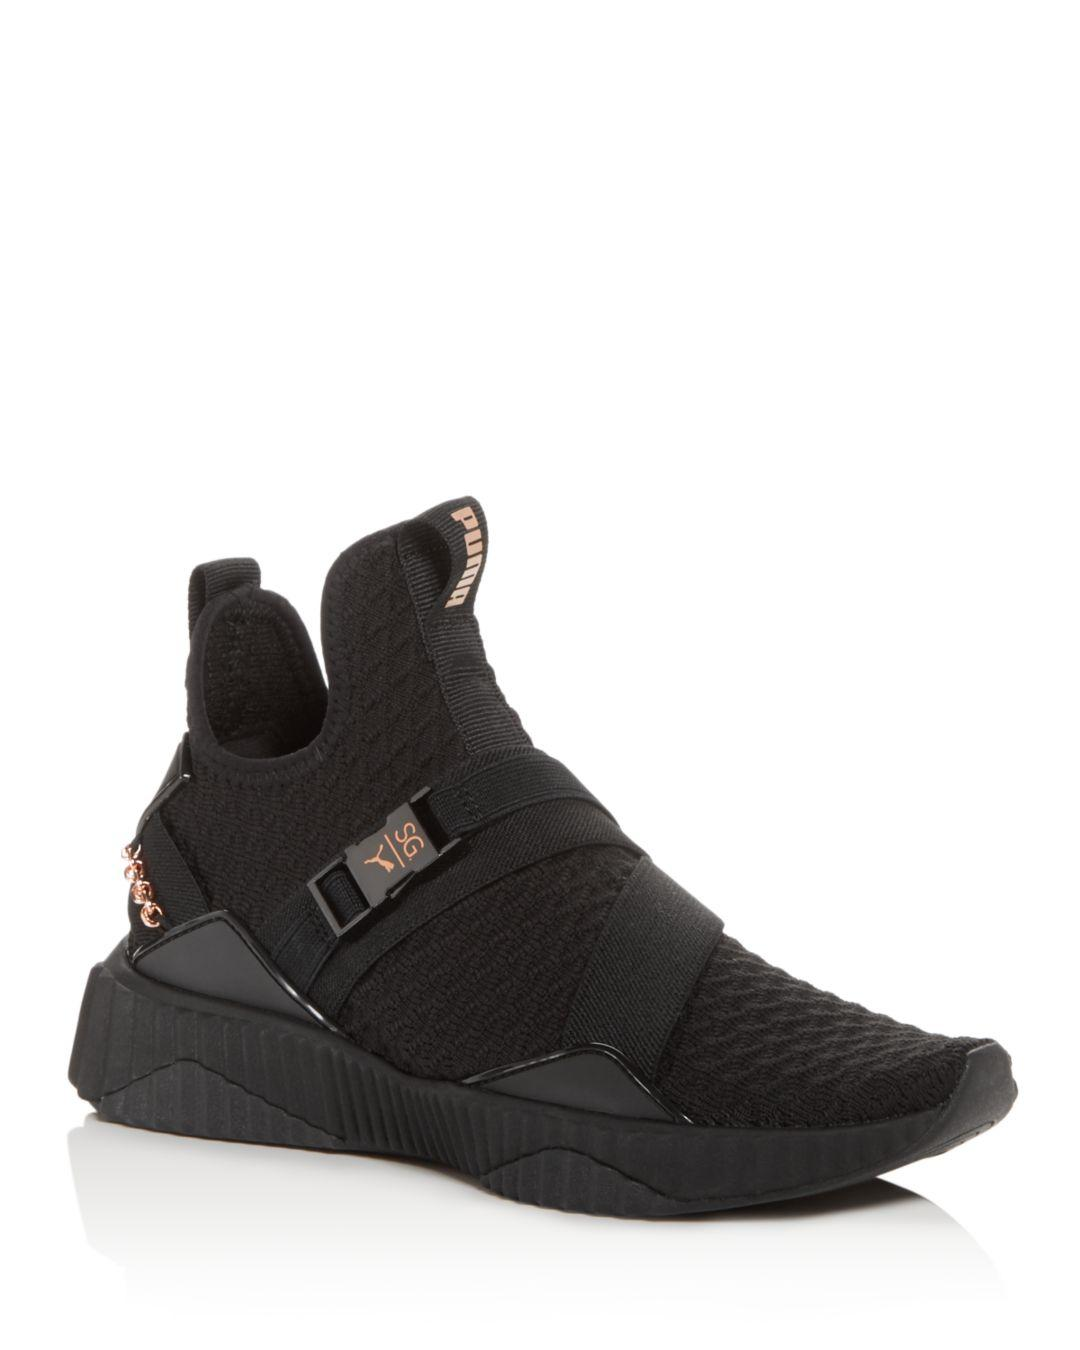 Lyst - PUMA Women s X Sg Defy Knit Mid-top Sneakers in Black f3dcfc6e5